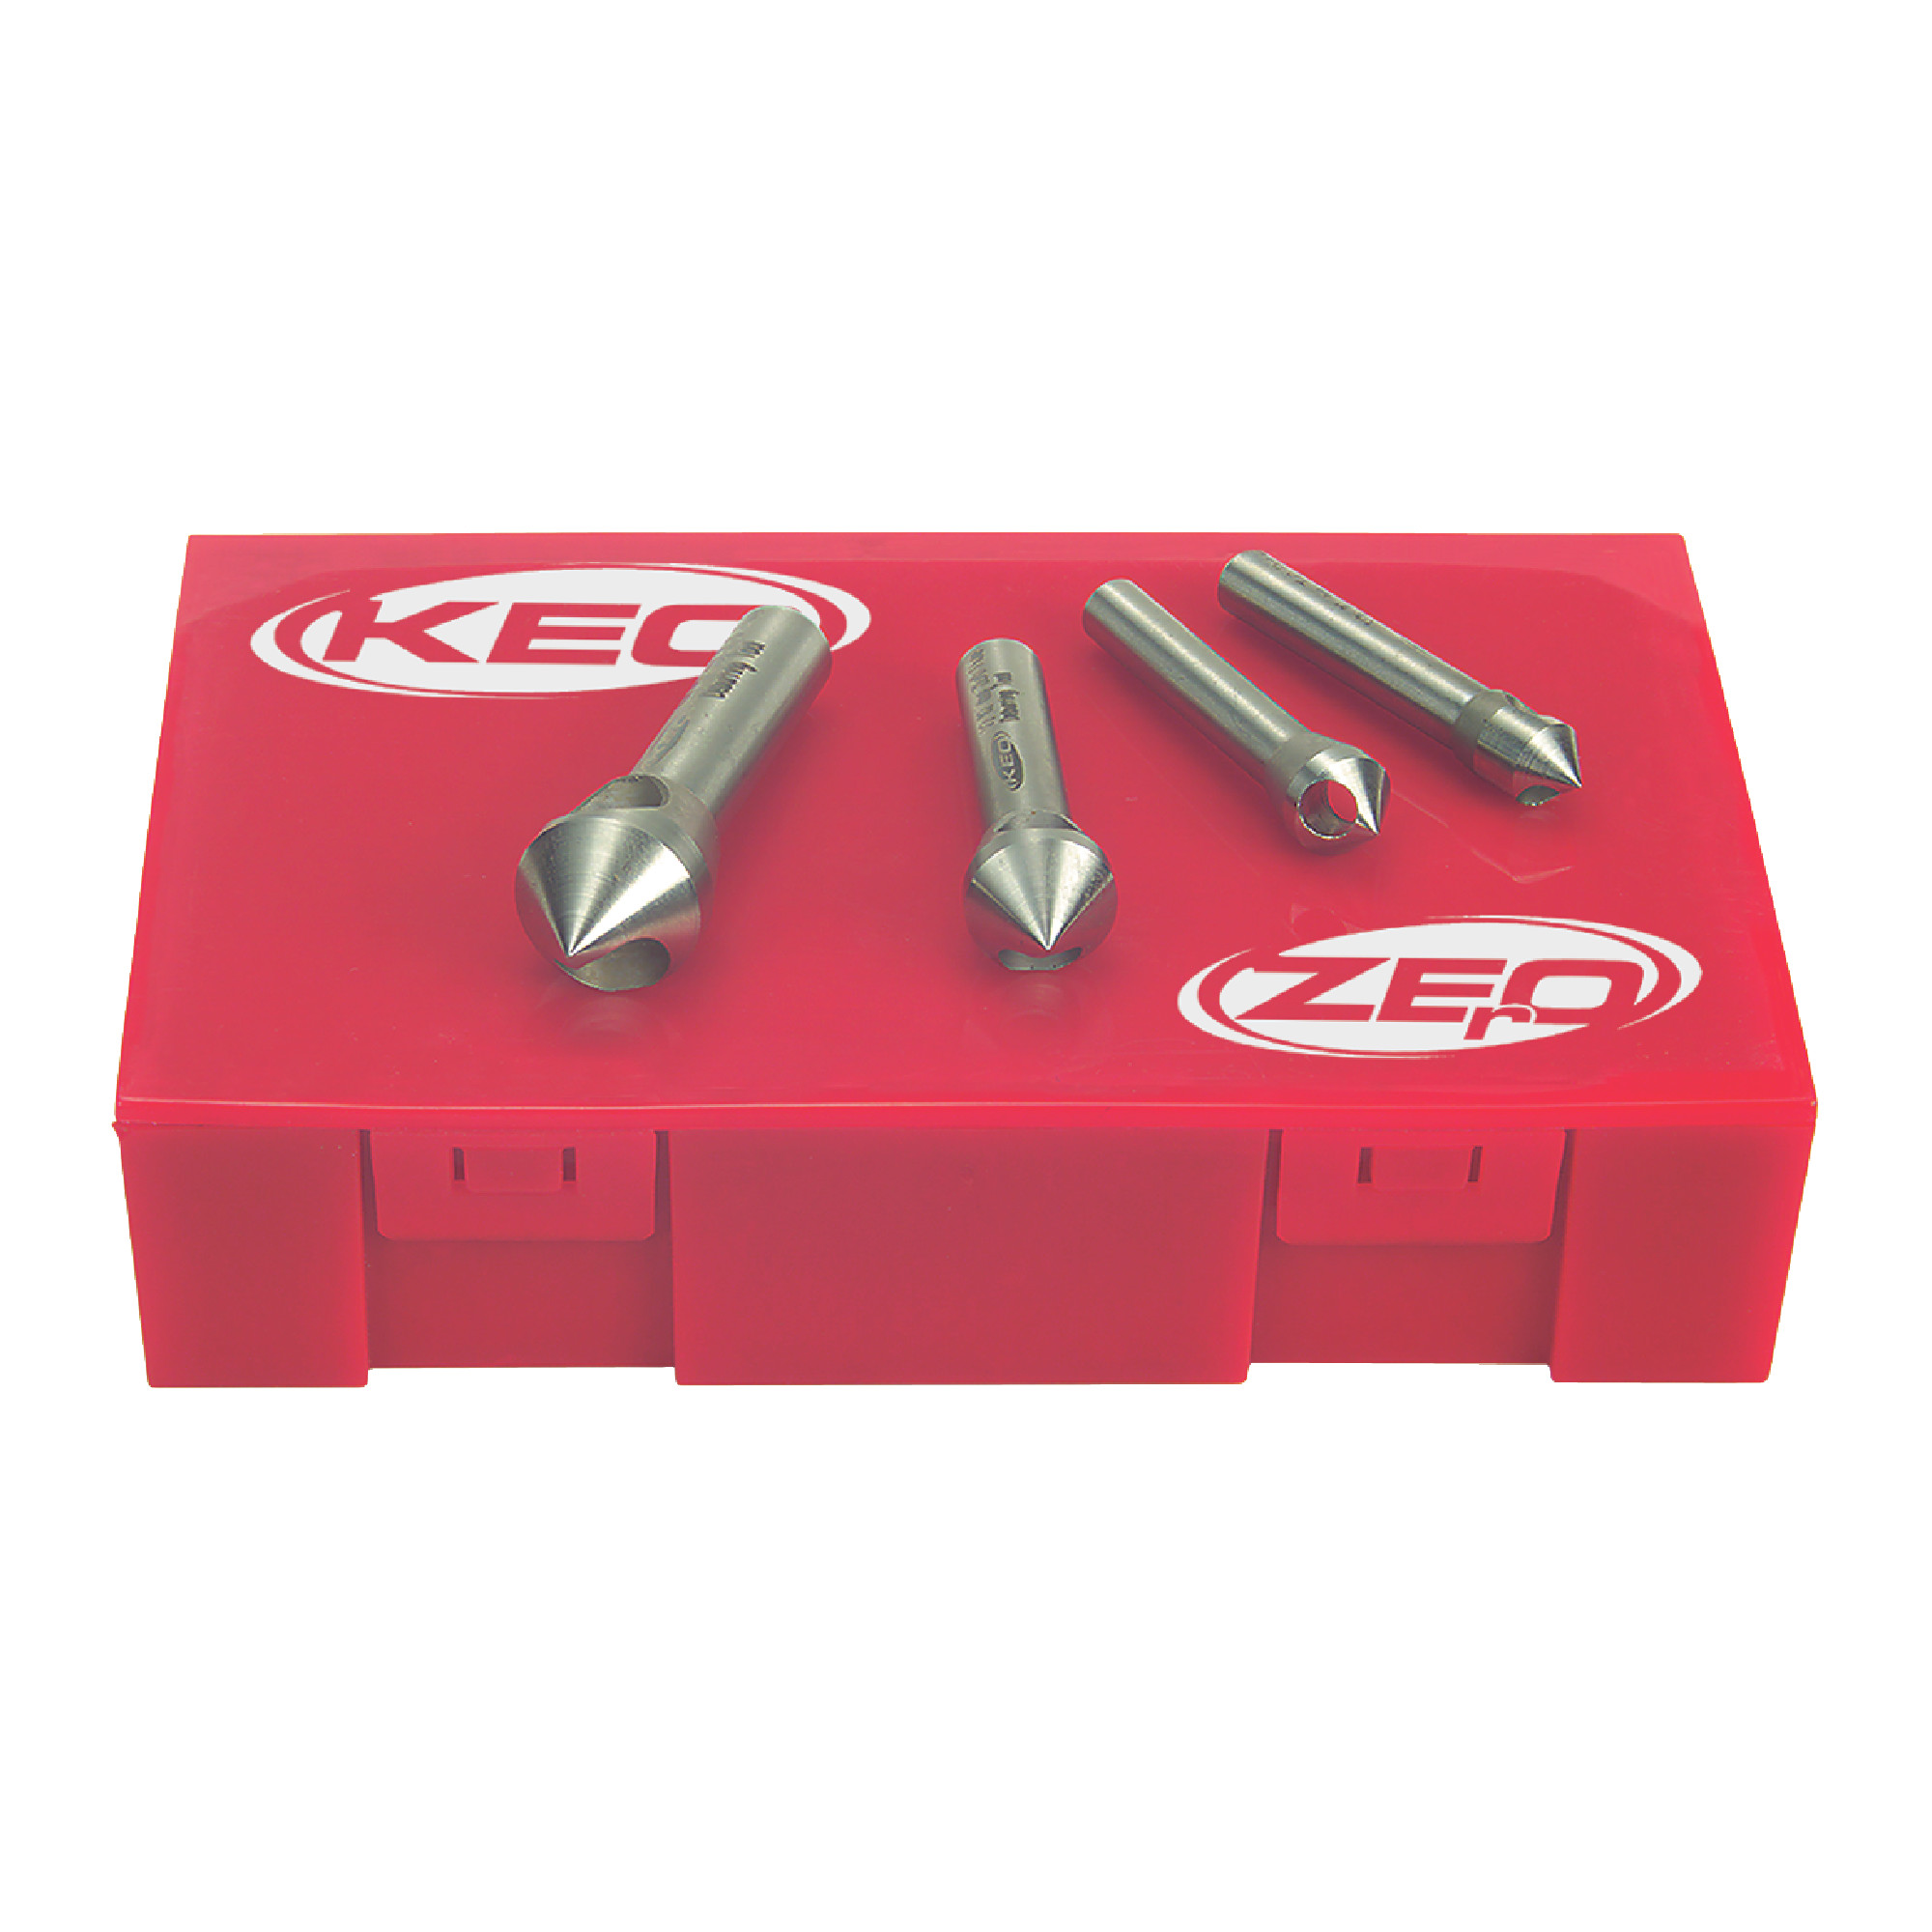 """KEO 0 Flute 4 Piece 5/16"""" to 5/8"""" M35 5% Cobalt 60° Included Angle Countersink Set"""